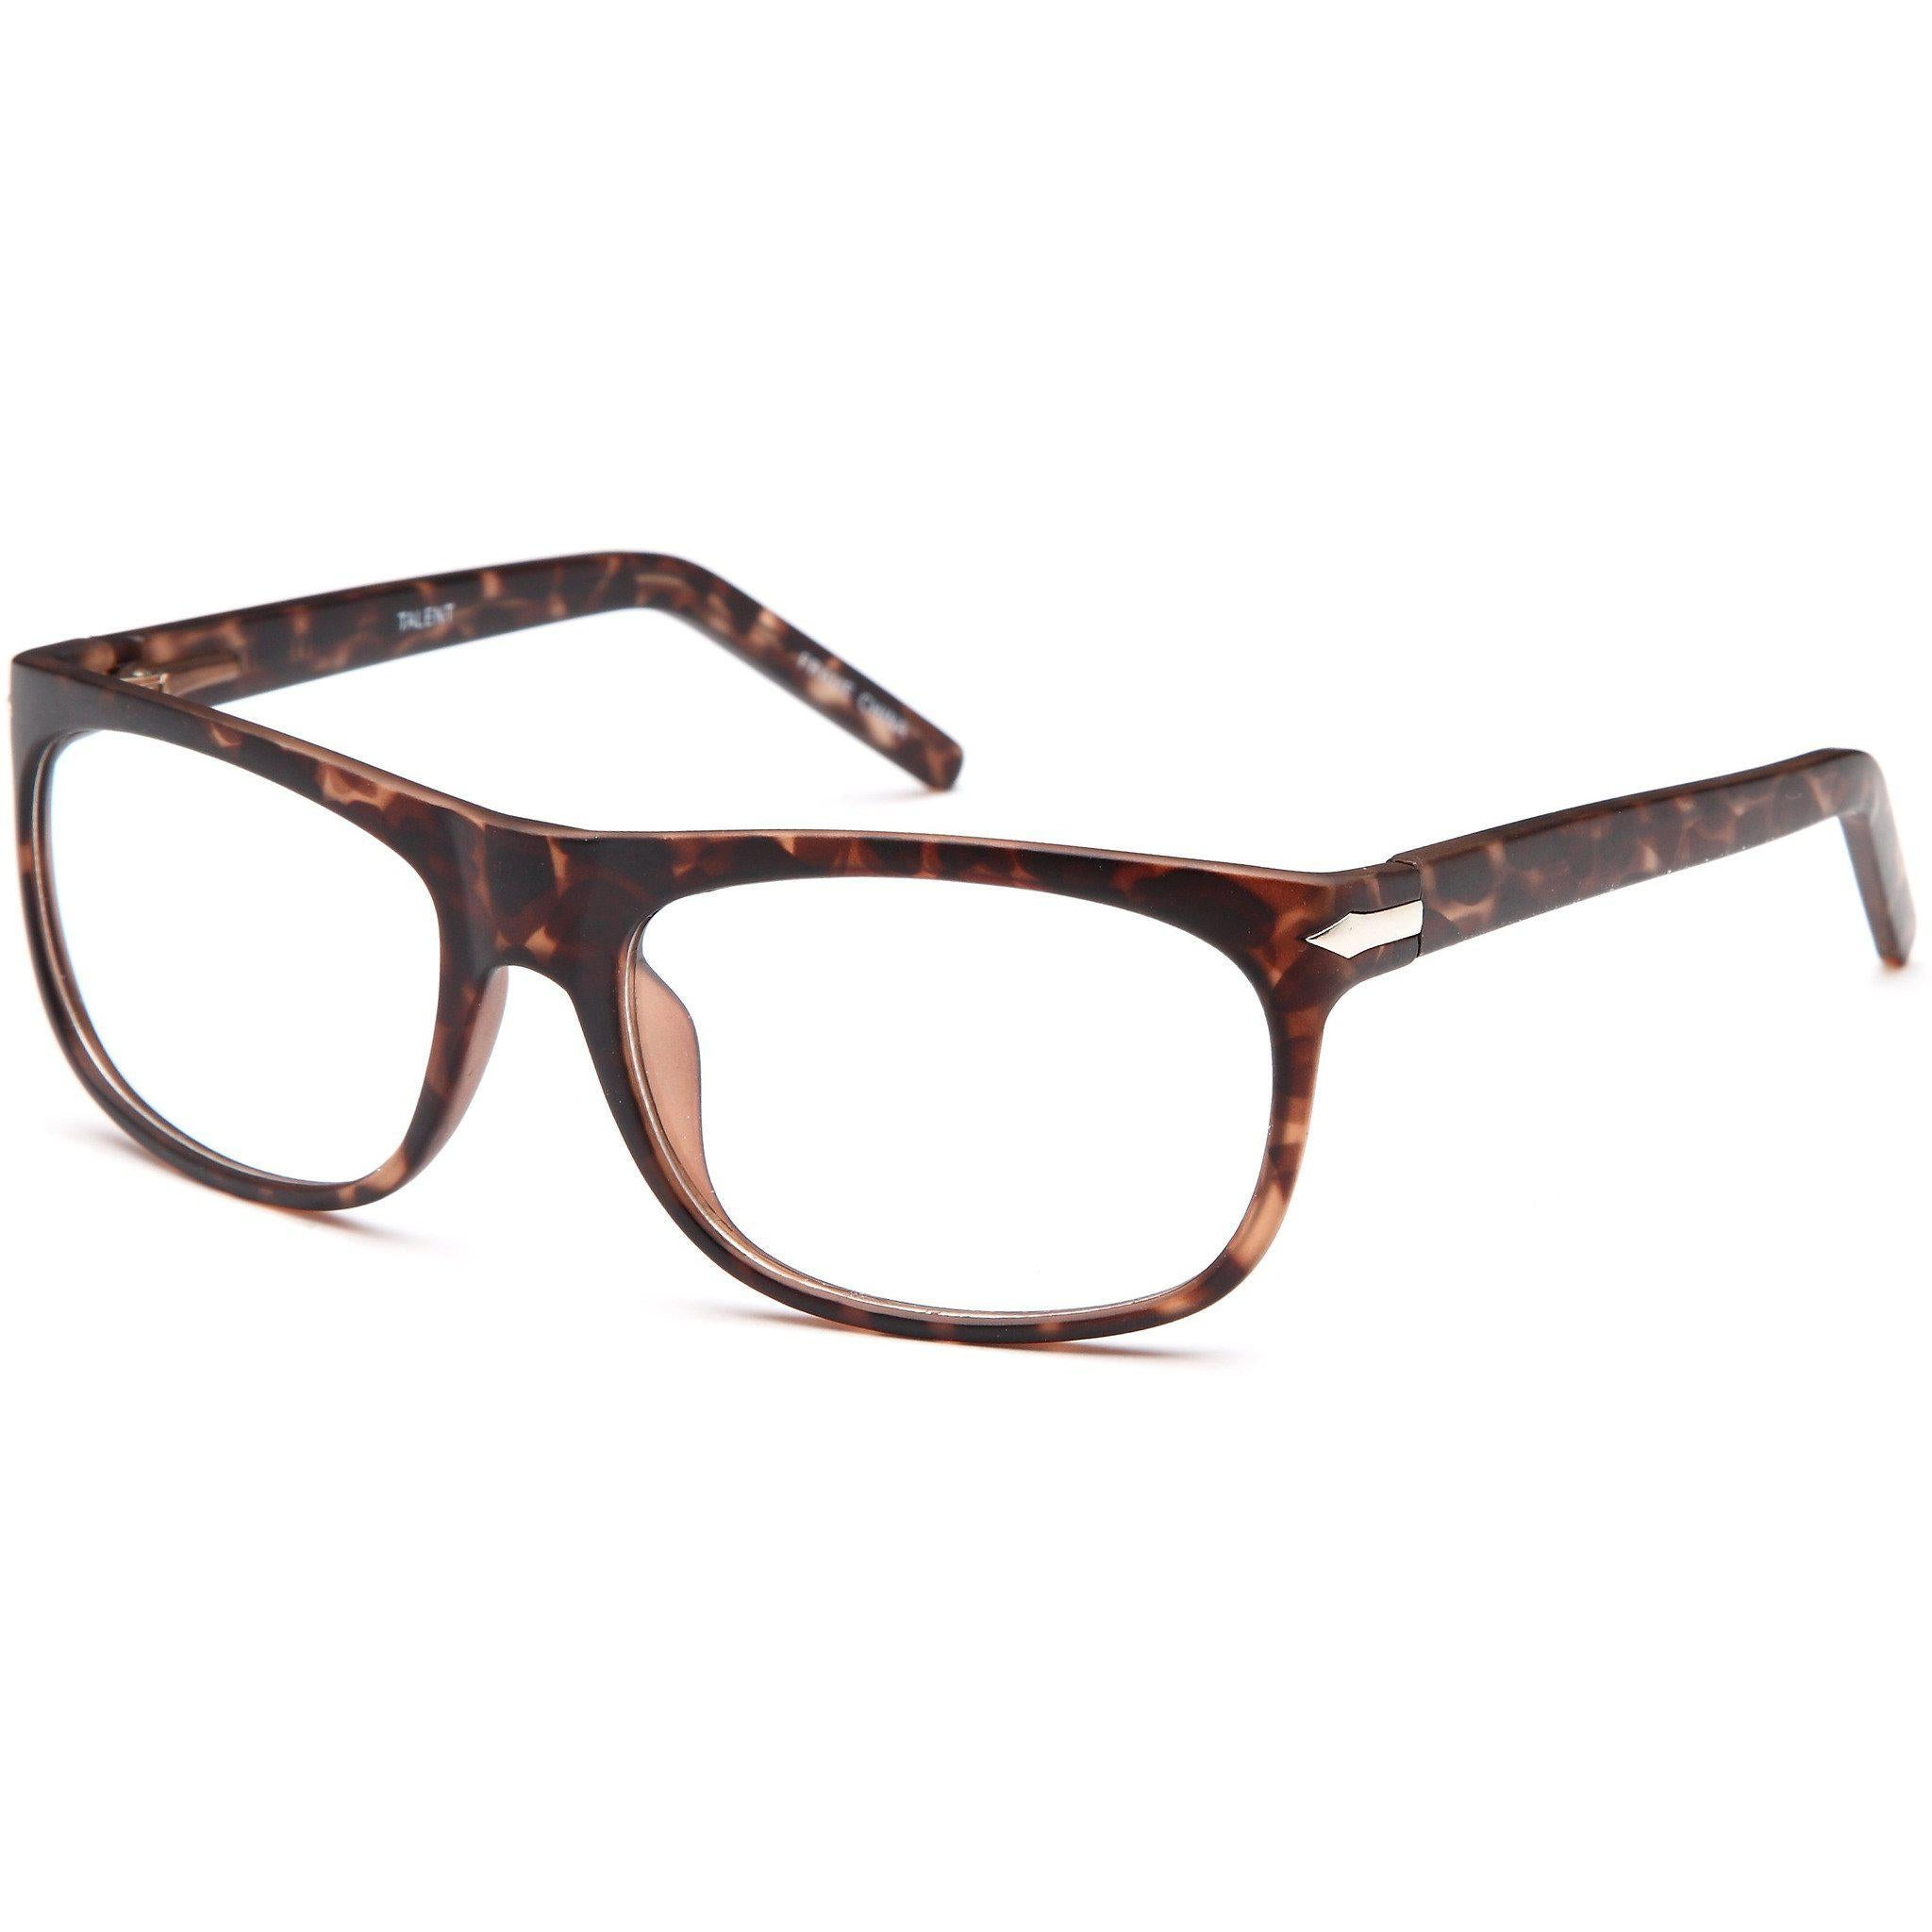 Ealing by The Square Mile Eyeglasses Prescription Available - timetoshade